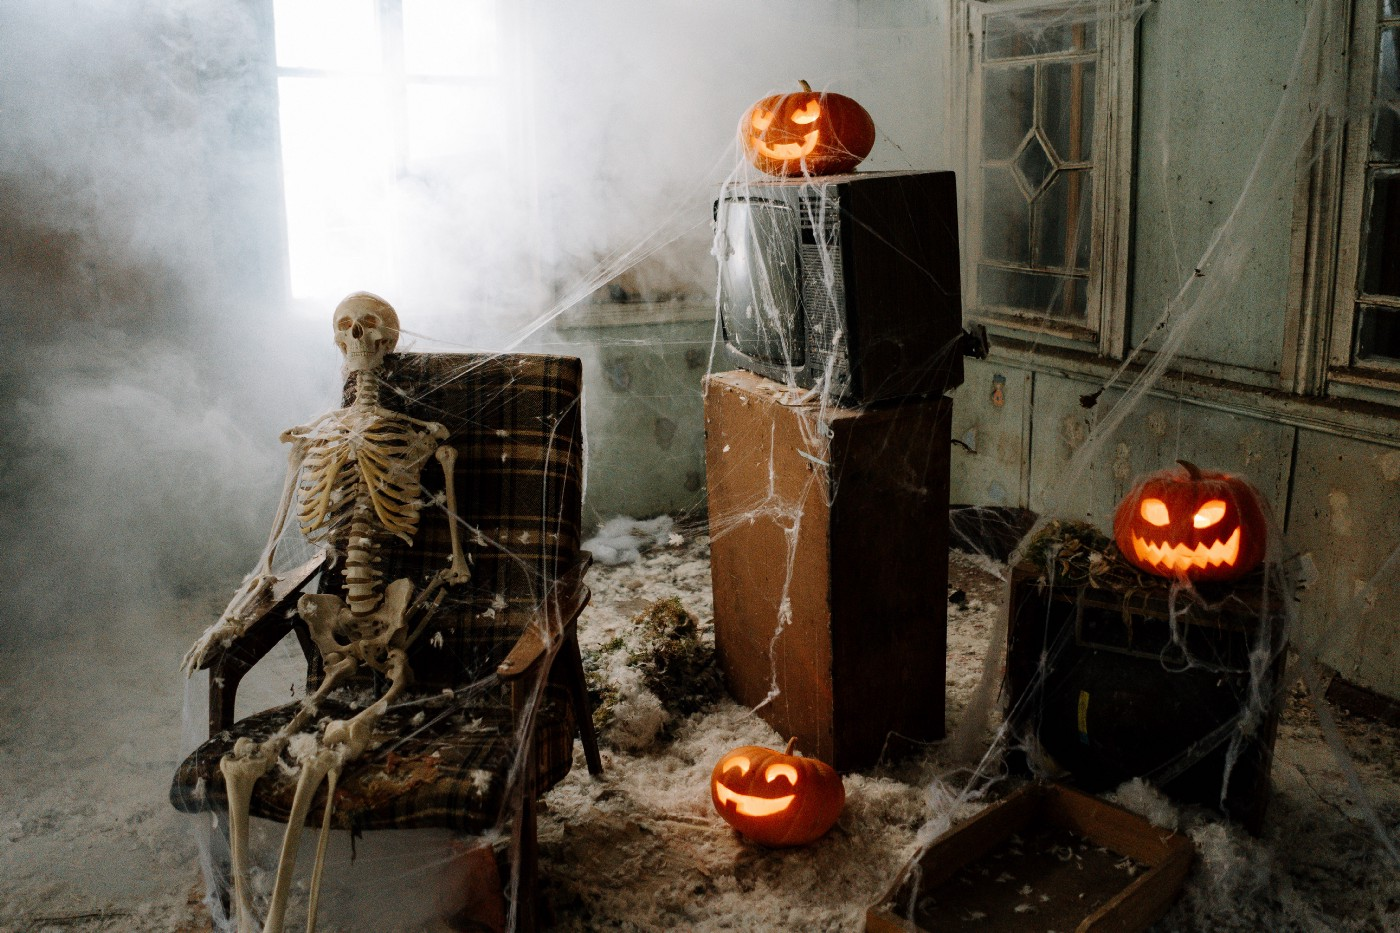 Skeleton and pumpkins and cobwebs